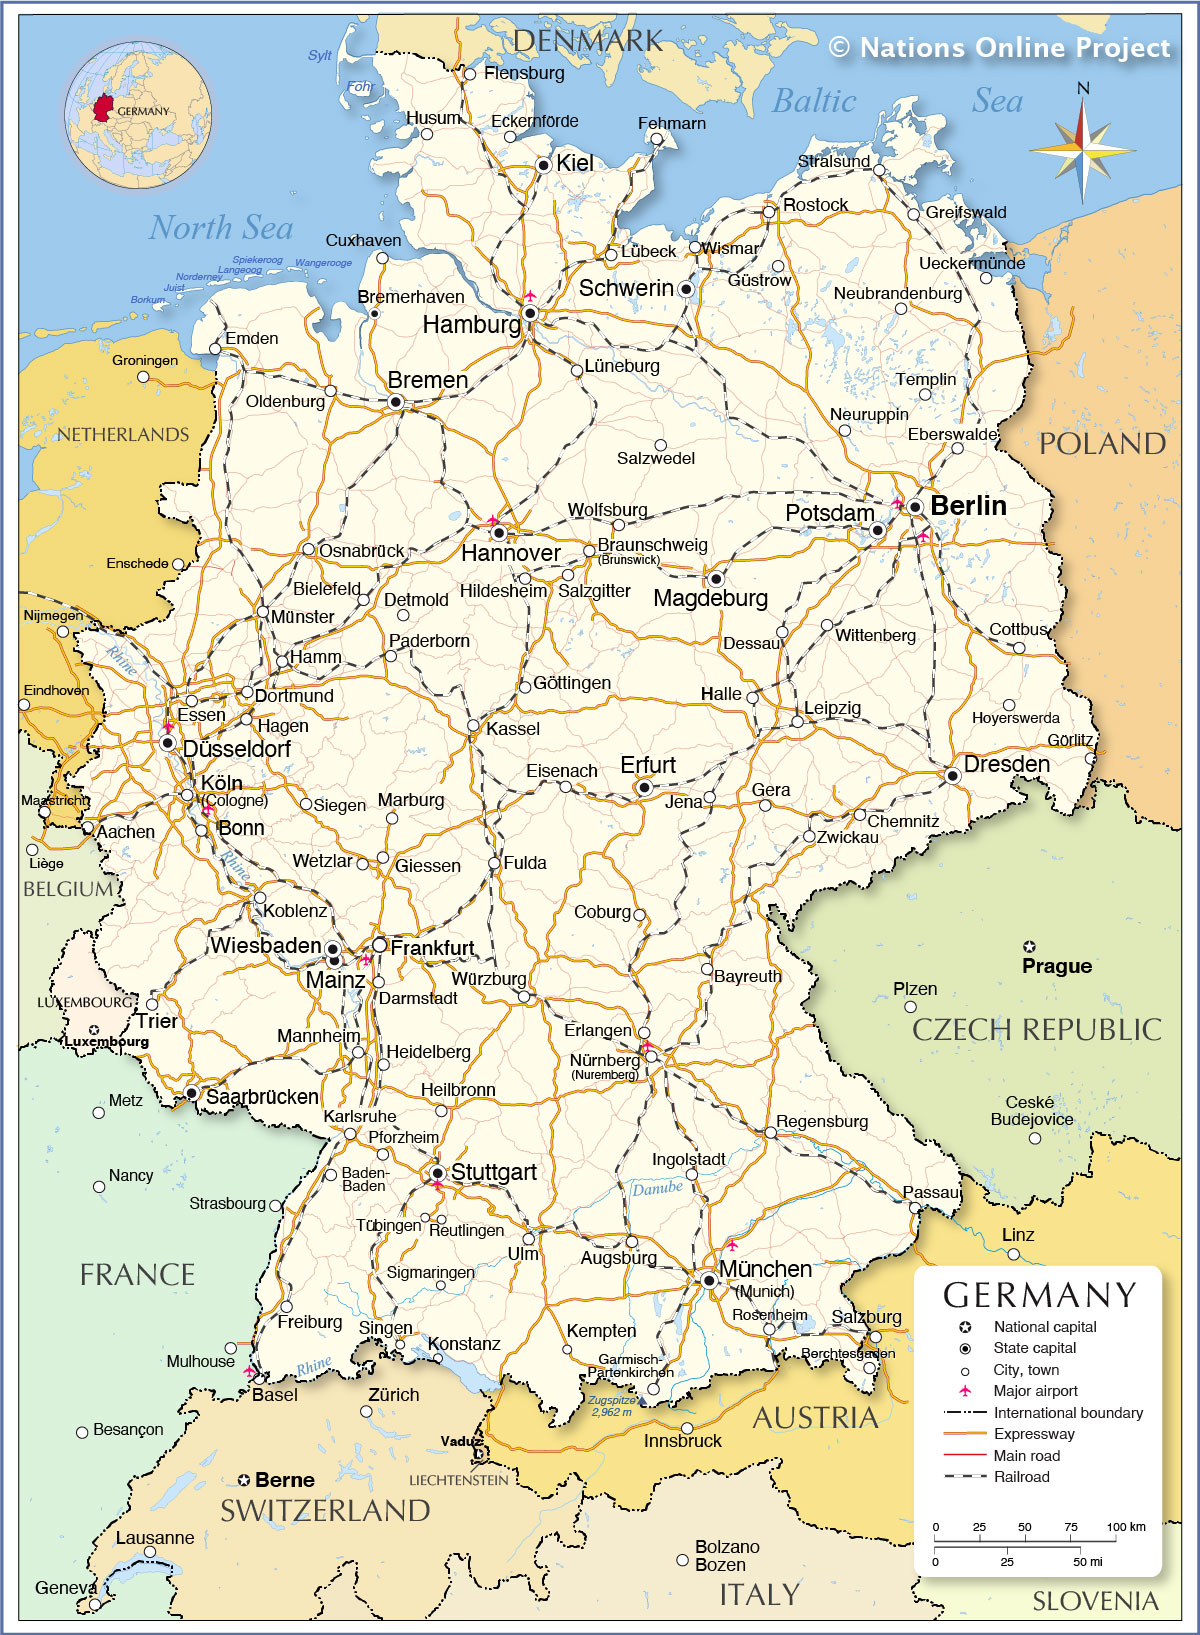 Political Map of Germany - Nations Online Project